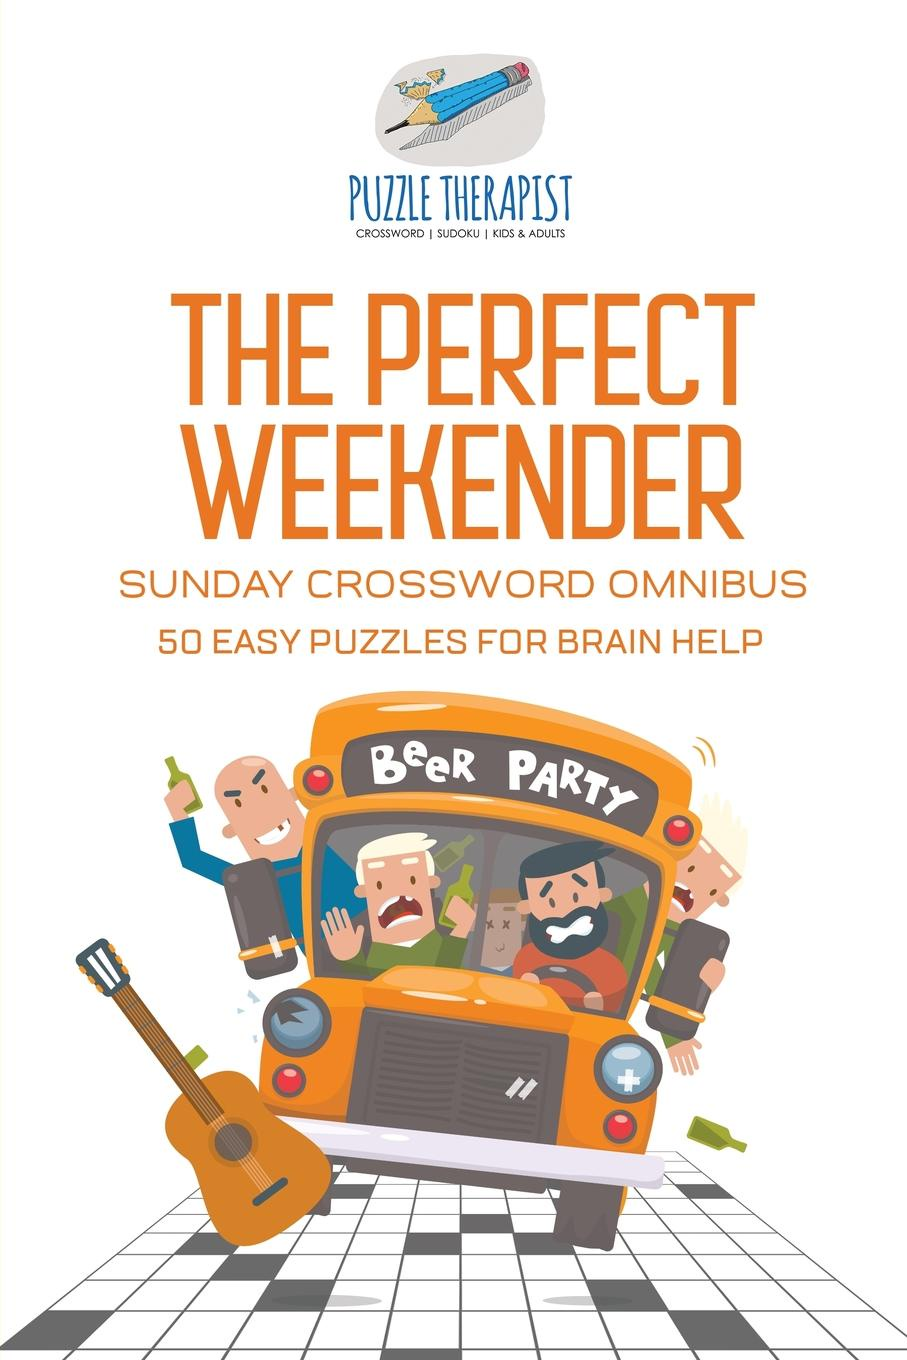 Puzzle Therapist The Perfect Weekender . Sunday Crossword Omnibus . 50 Easy Puzzles for Brain Help faulks s week in december special ed